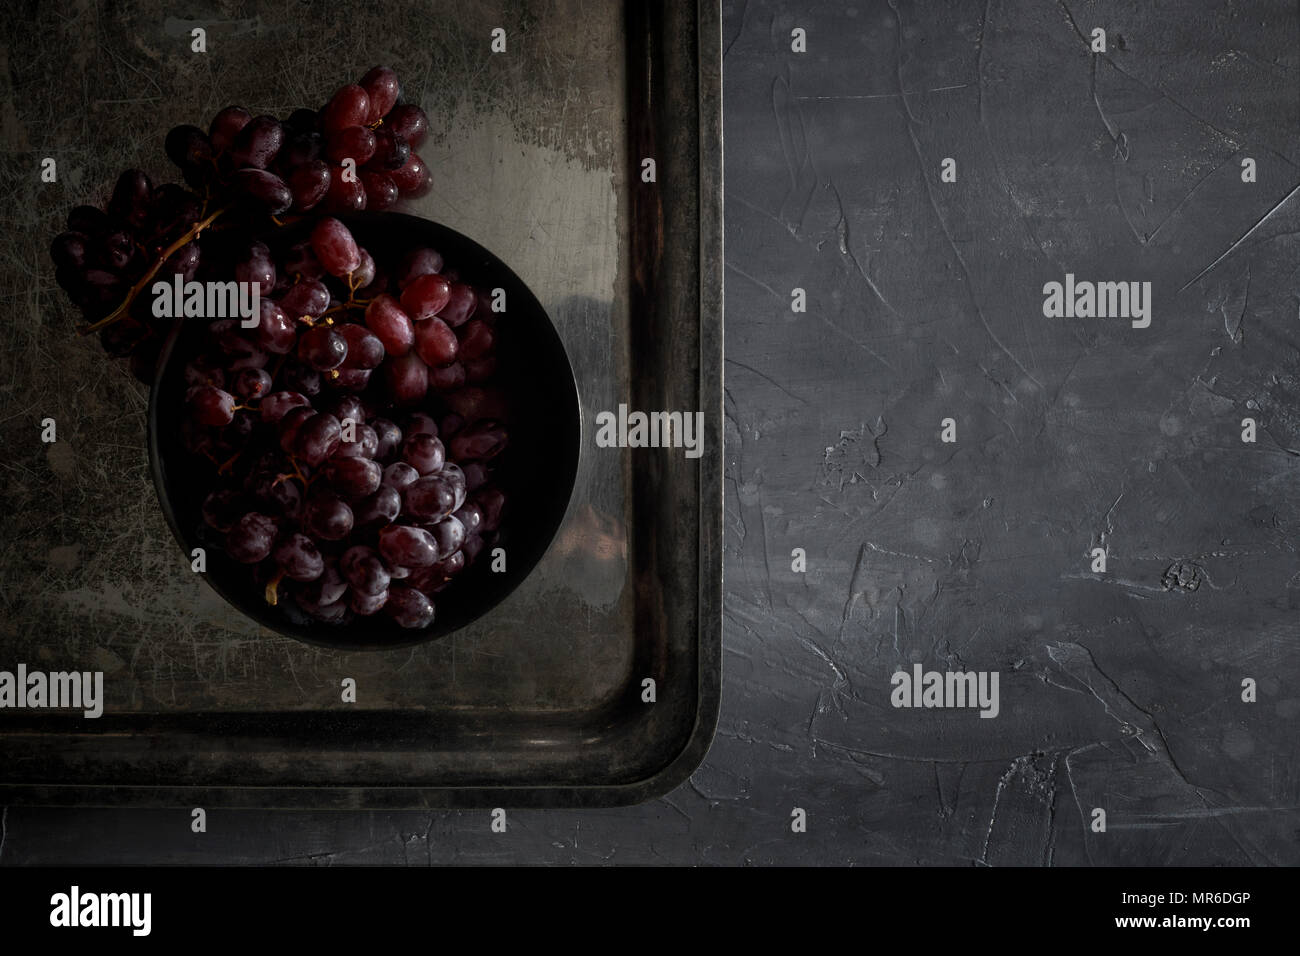 Fresh, red grapes in on a patinated metal tray on a dark countertop. Dark, moody, natural lighting. - Stock Image